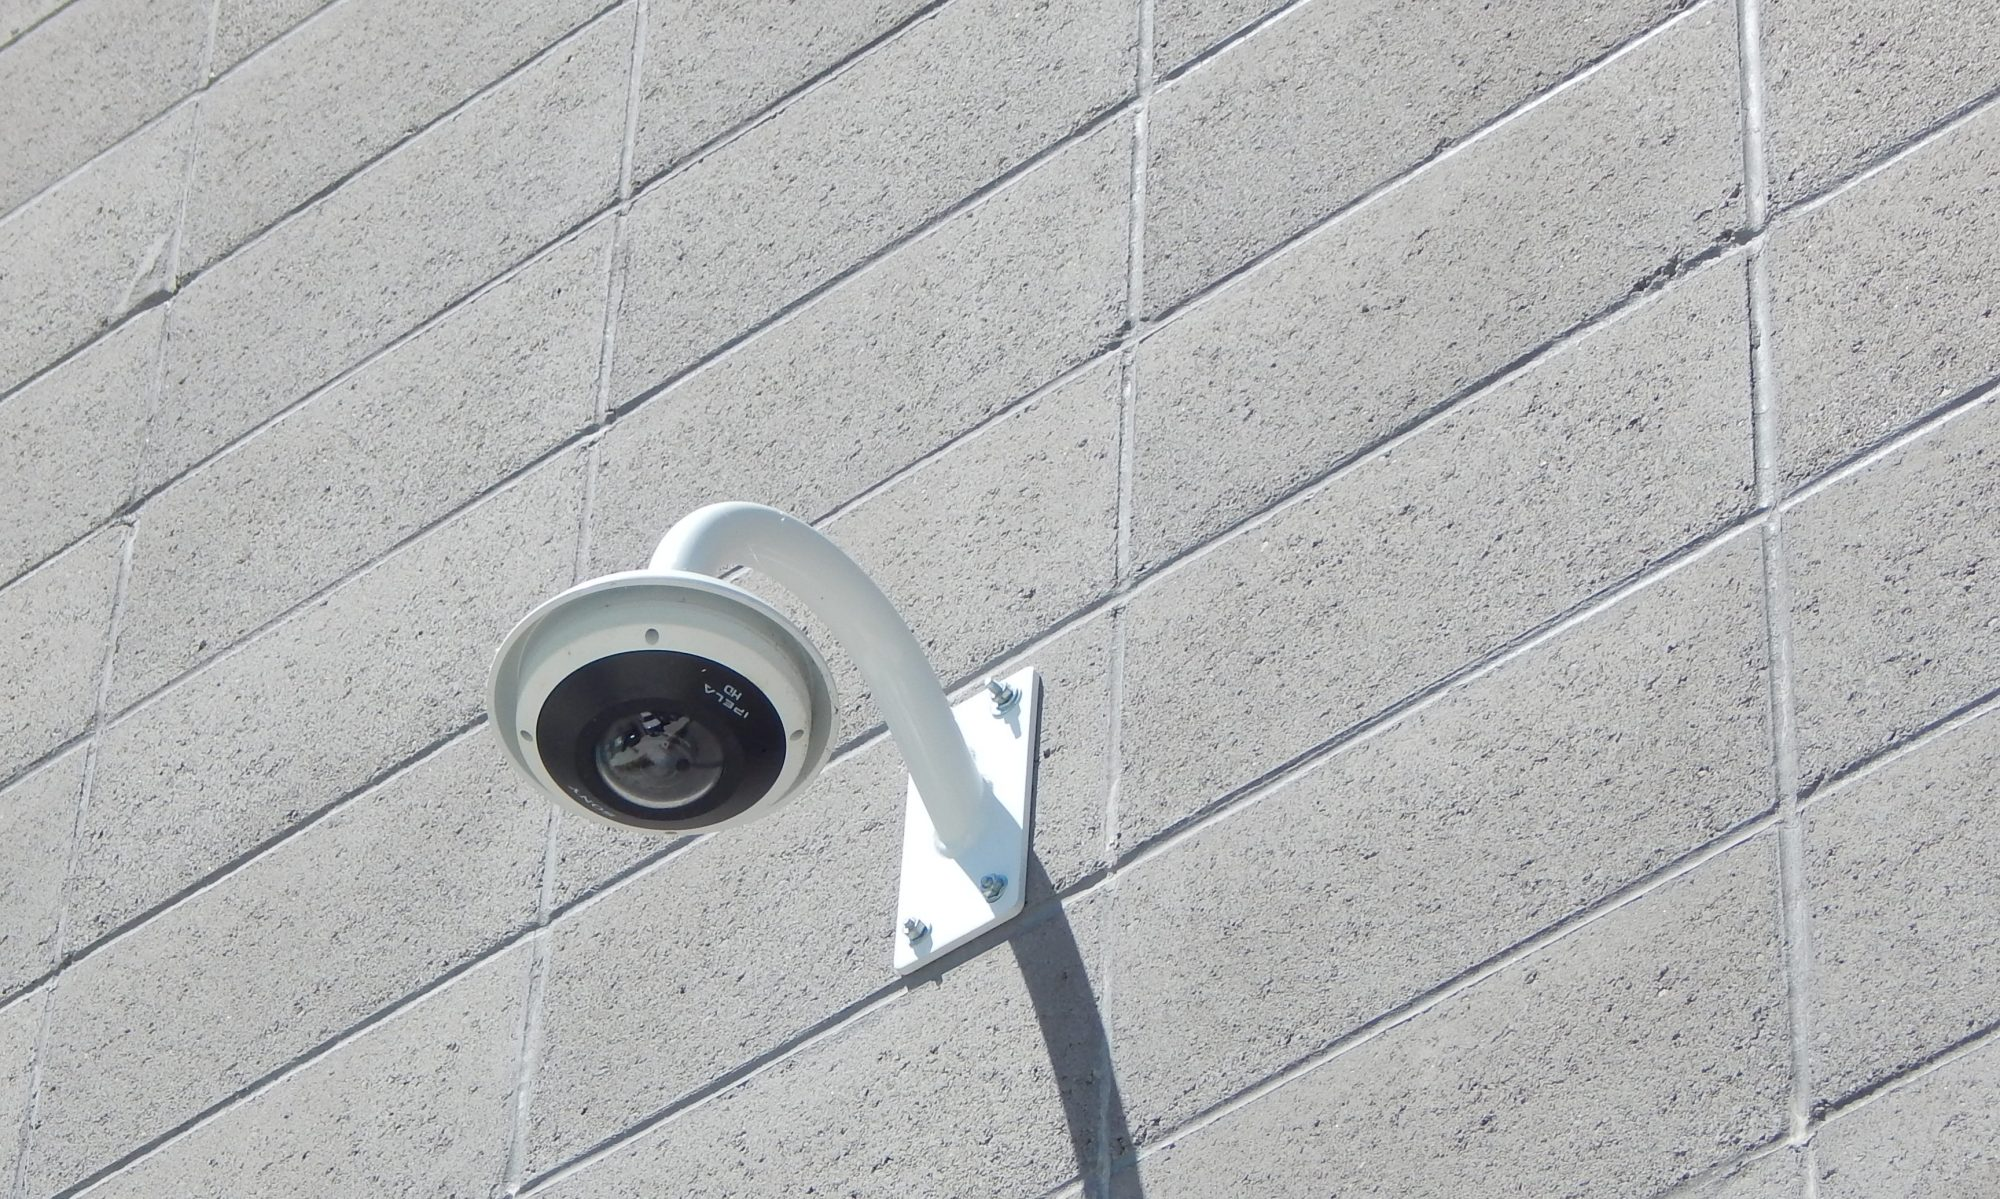 PDI SECURITY SYSTEMS